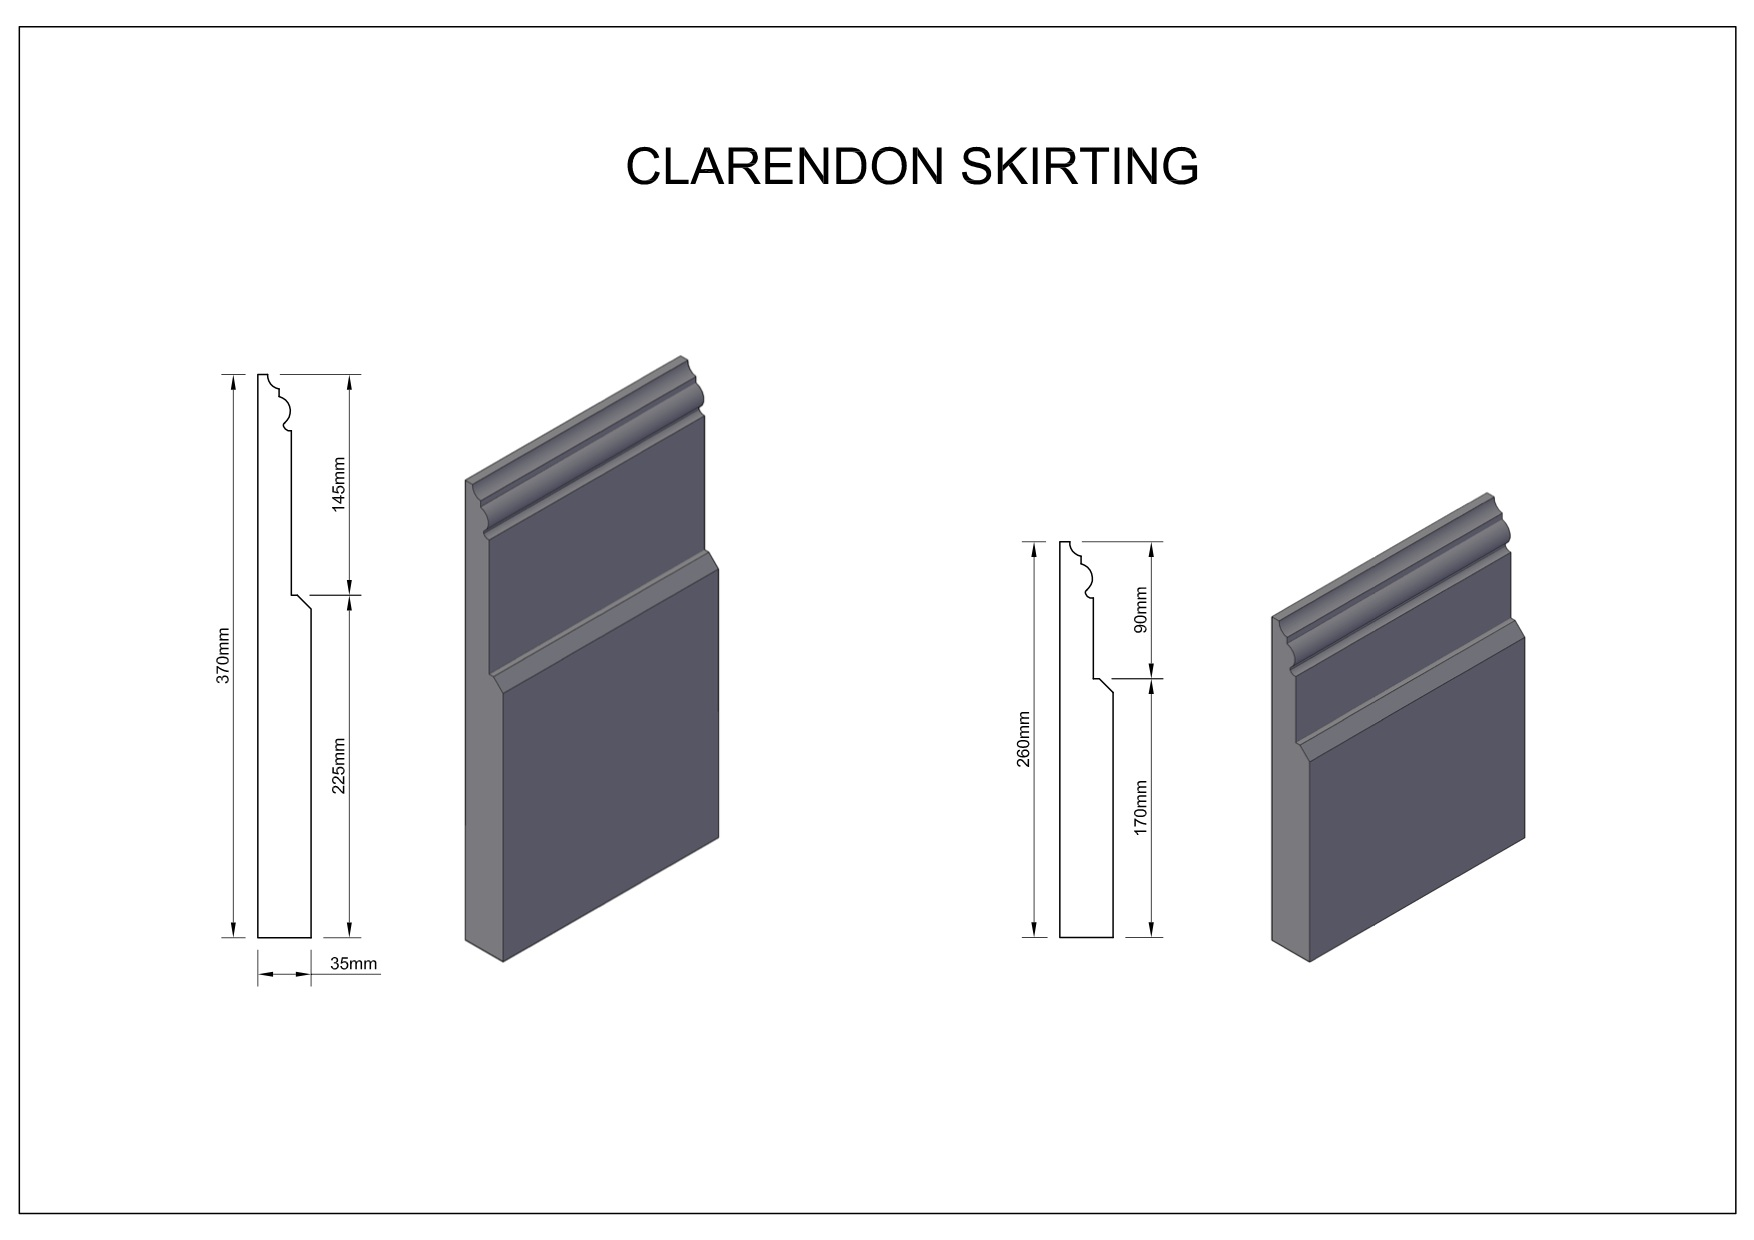 Clarendon-skirting large